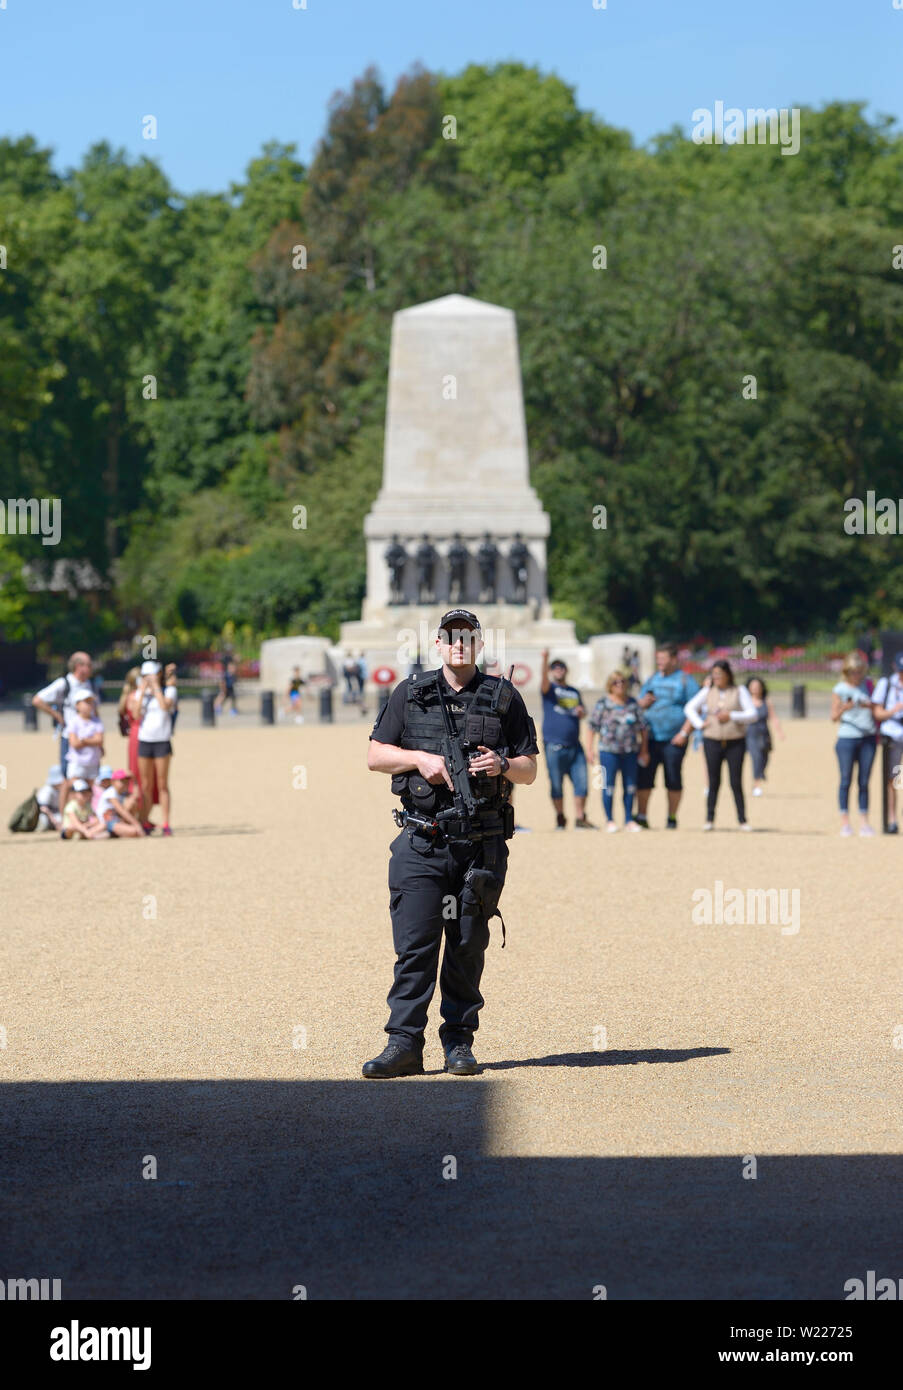 London, England, UK. Armed police officer on duty in Horse Guards Parade, Whitehall Stock Photo